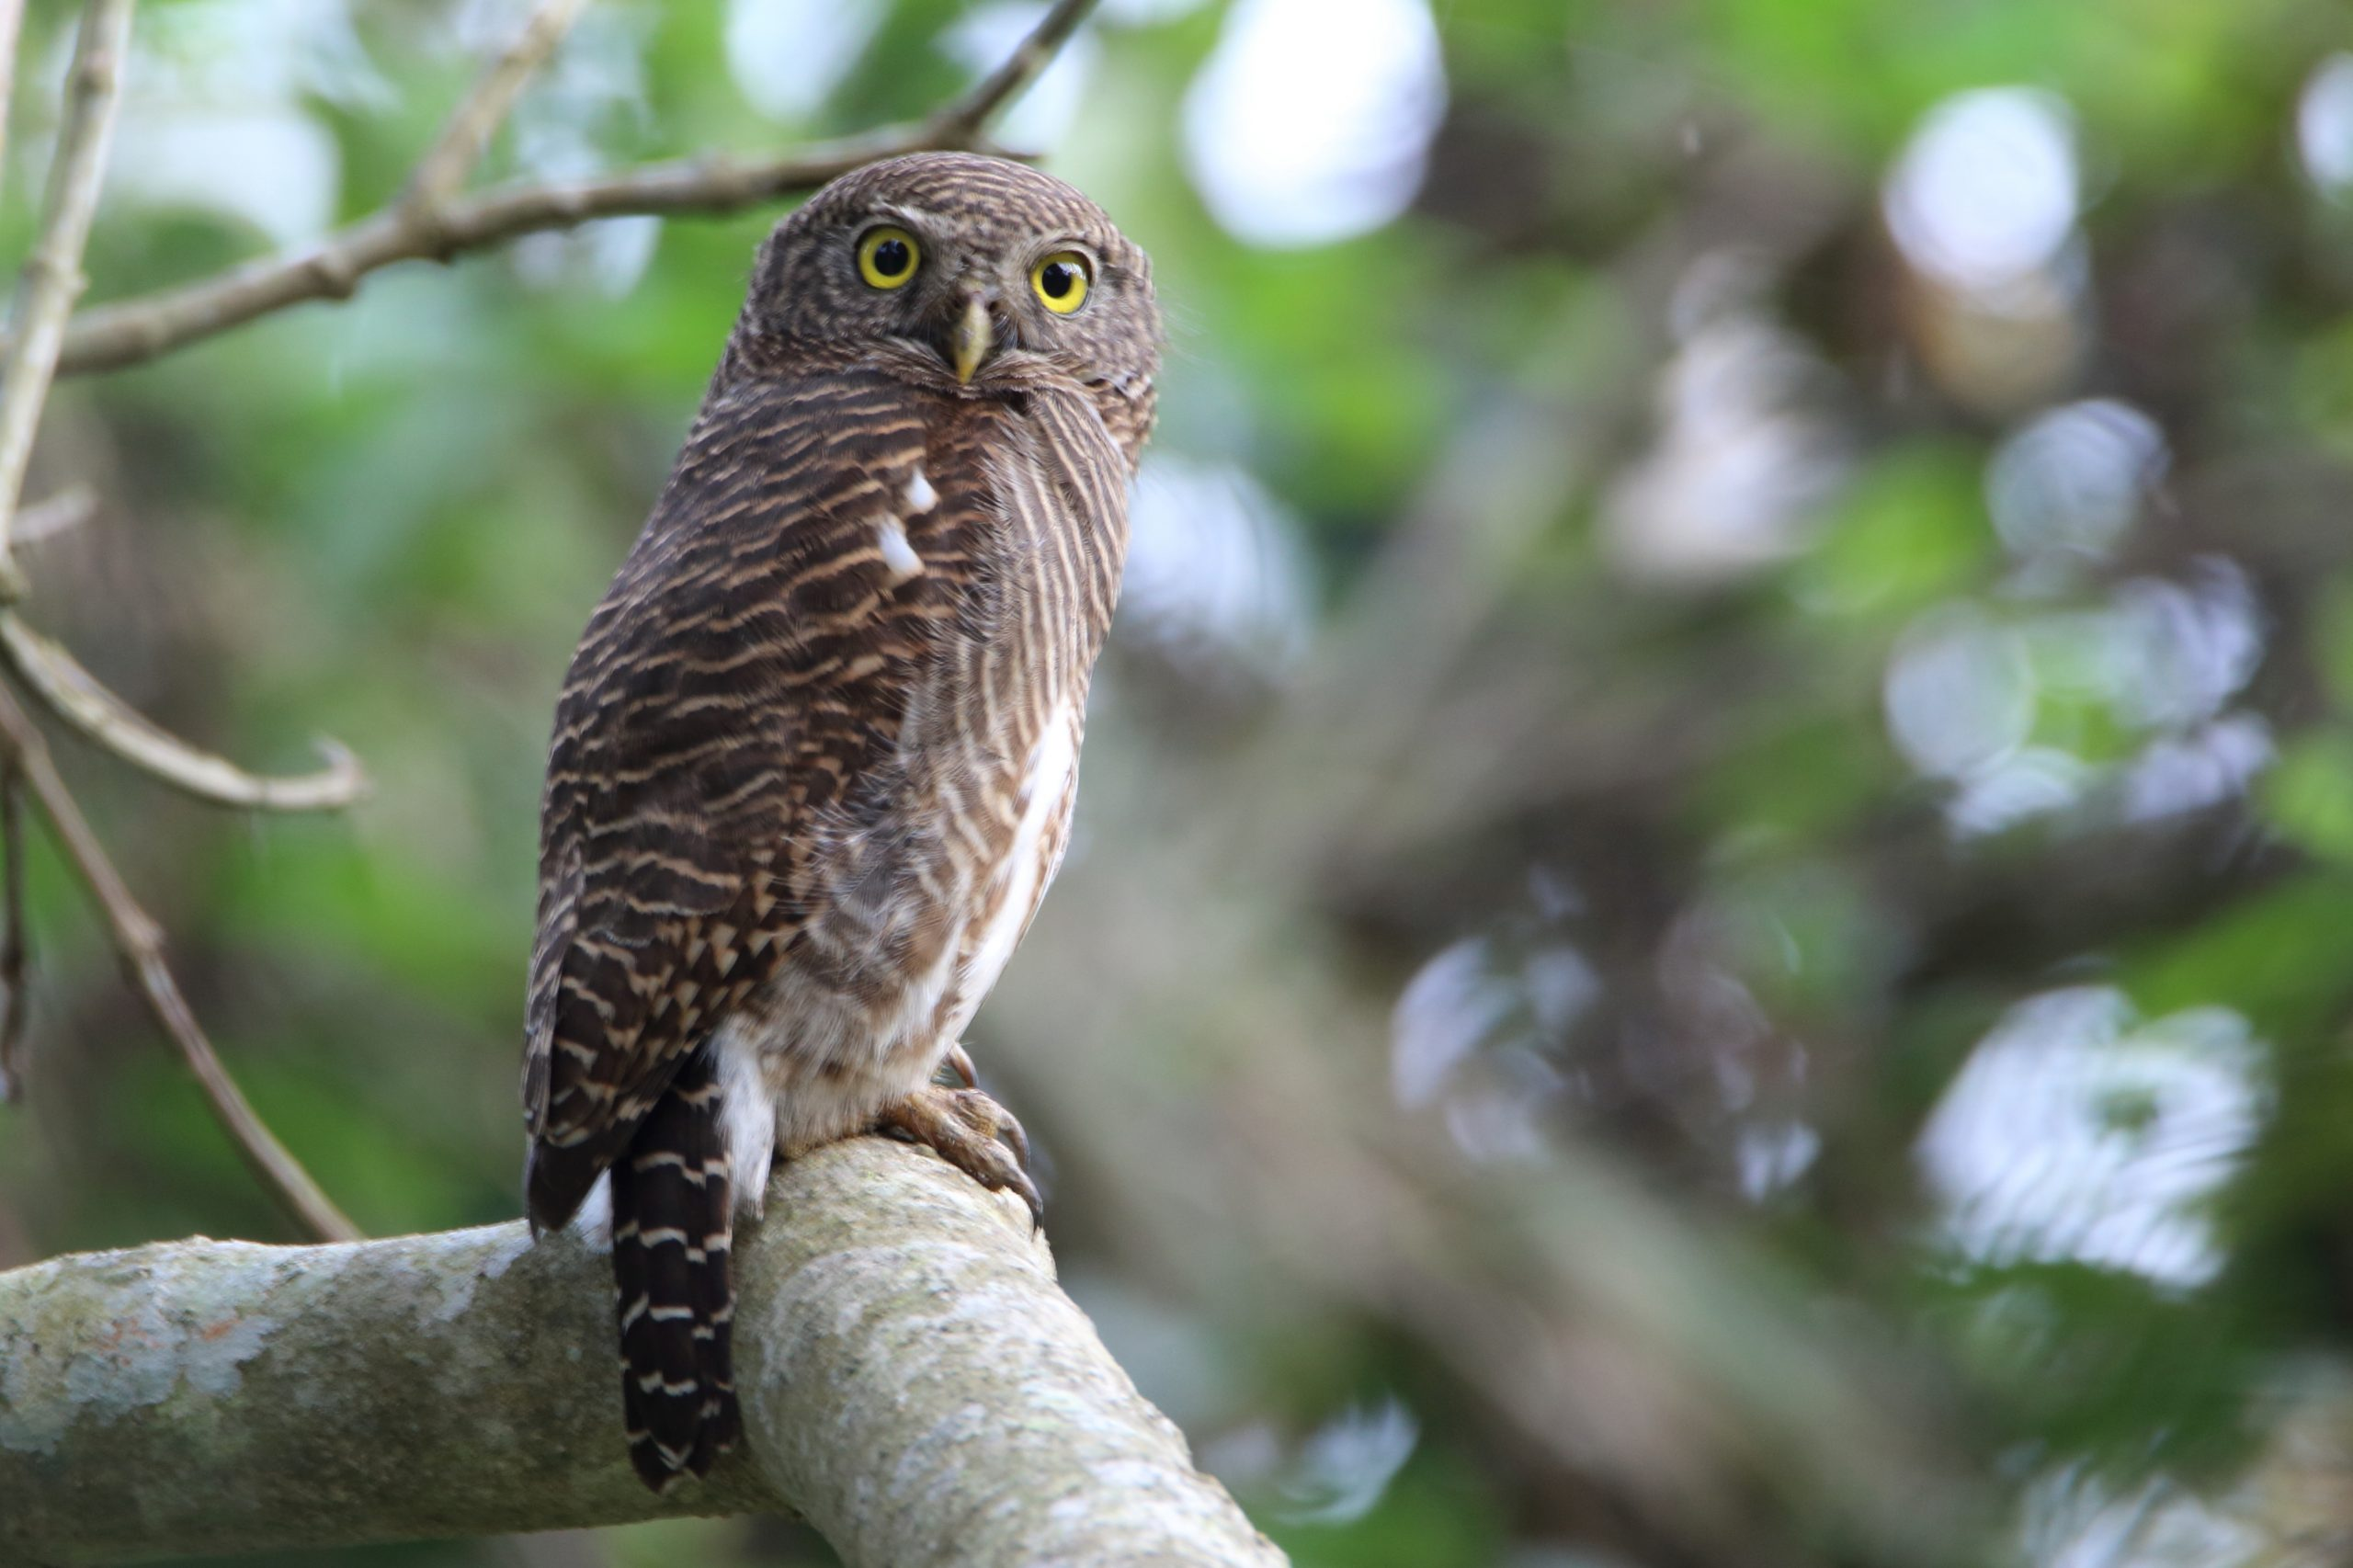 Owl perched on a tree